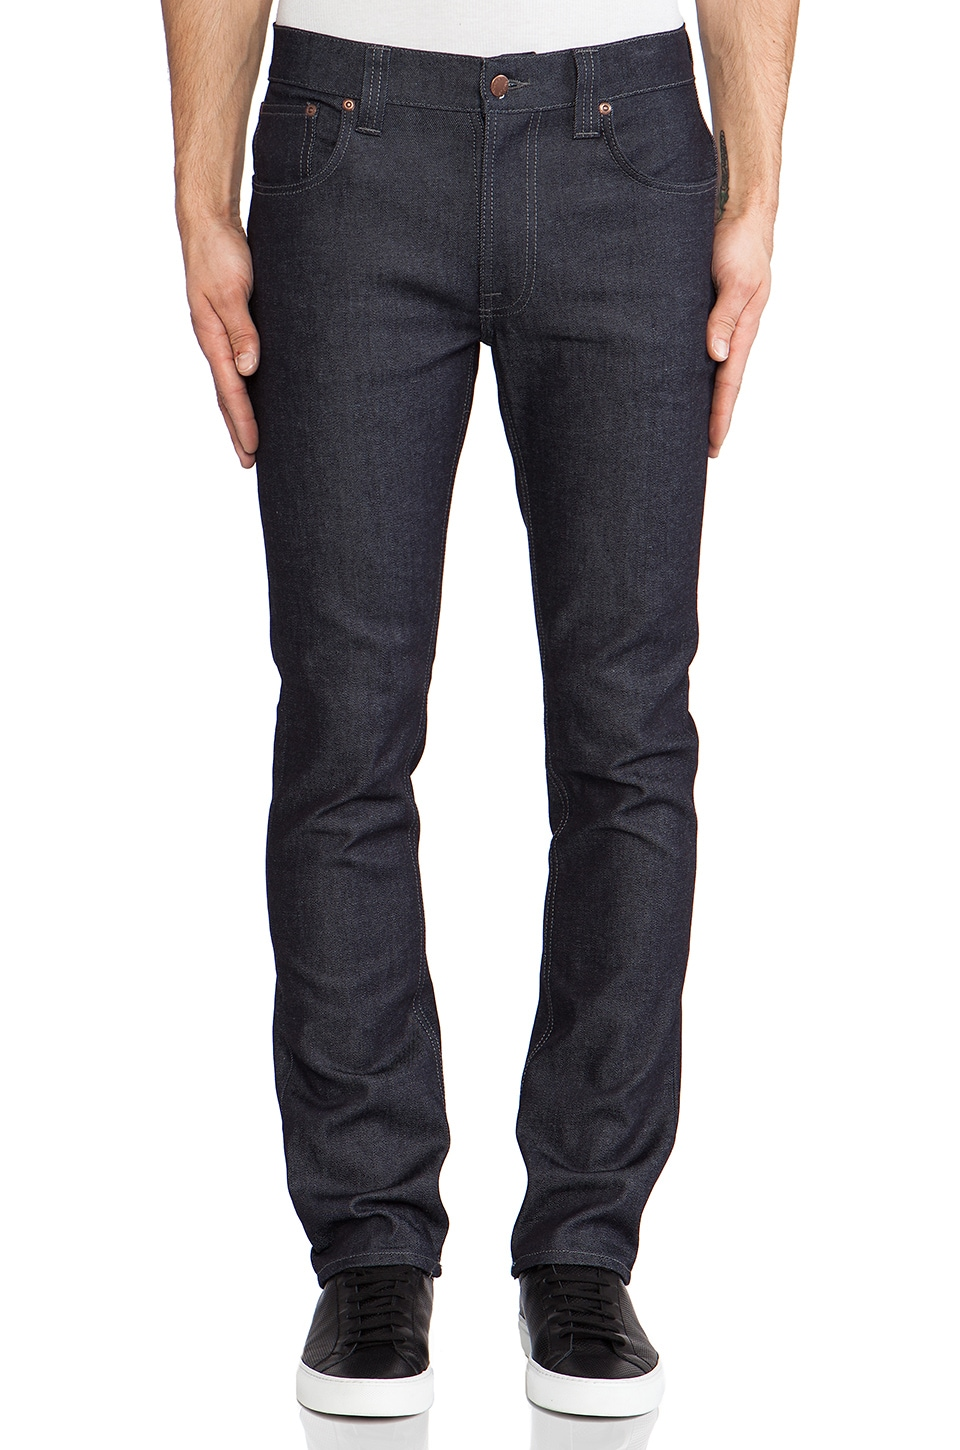 Nudie Jeans Thin Finn in Org. Dry Dark Grey